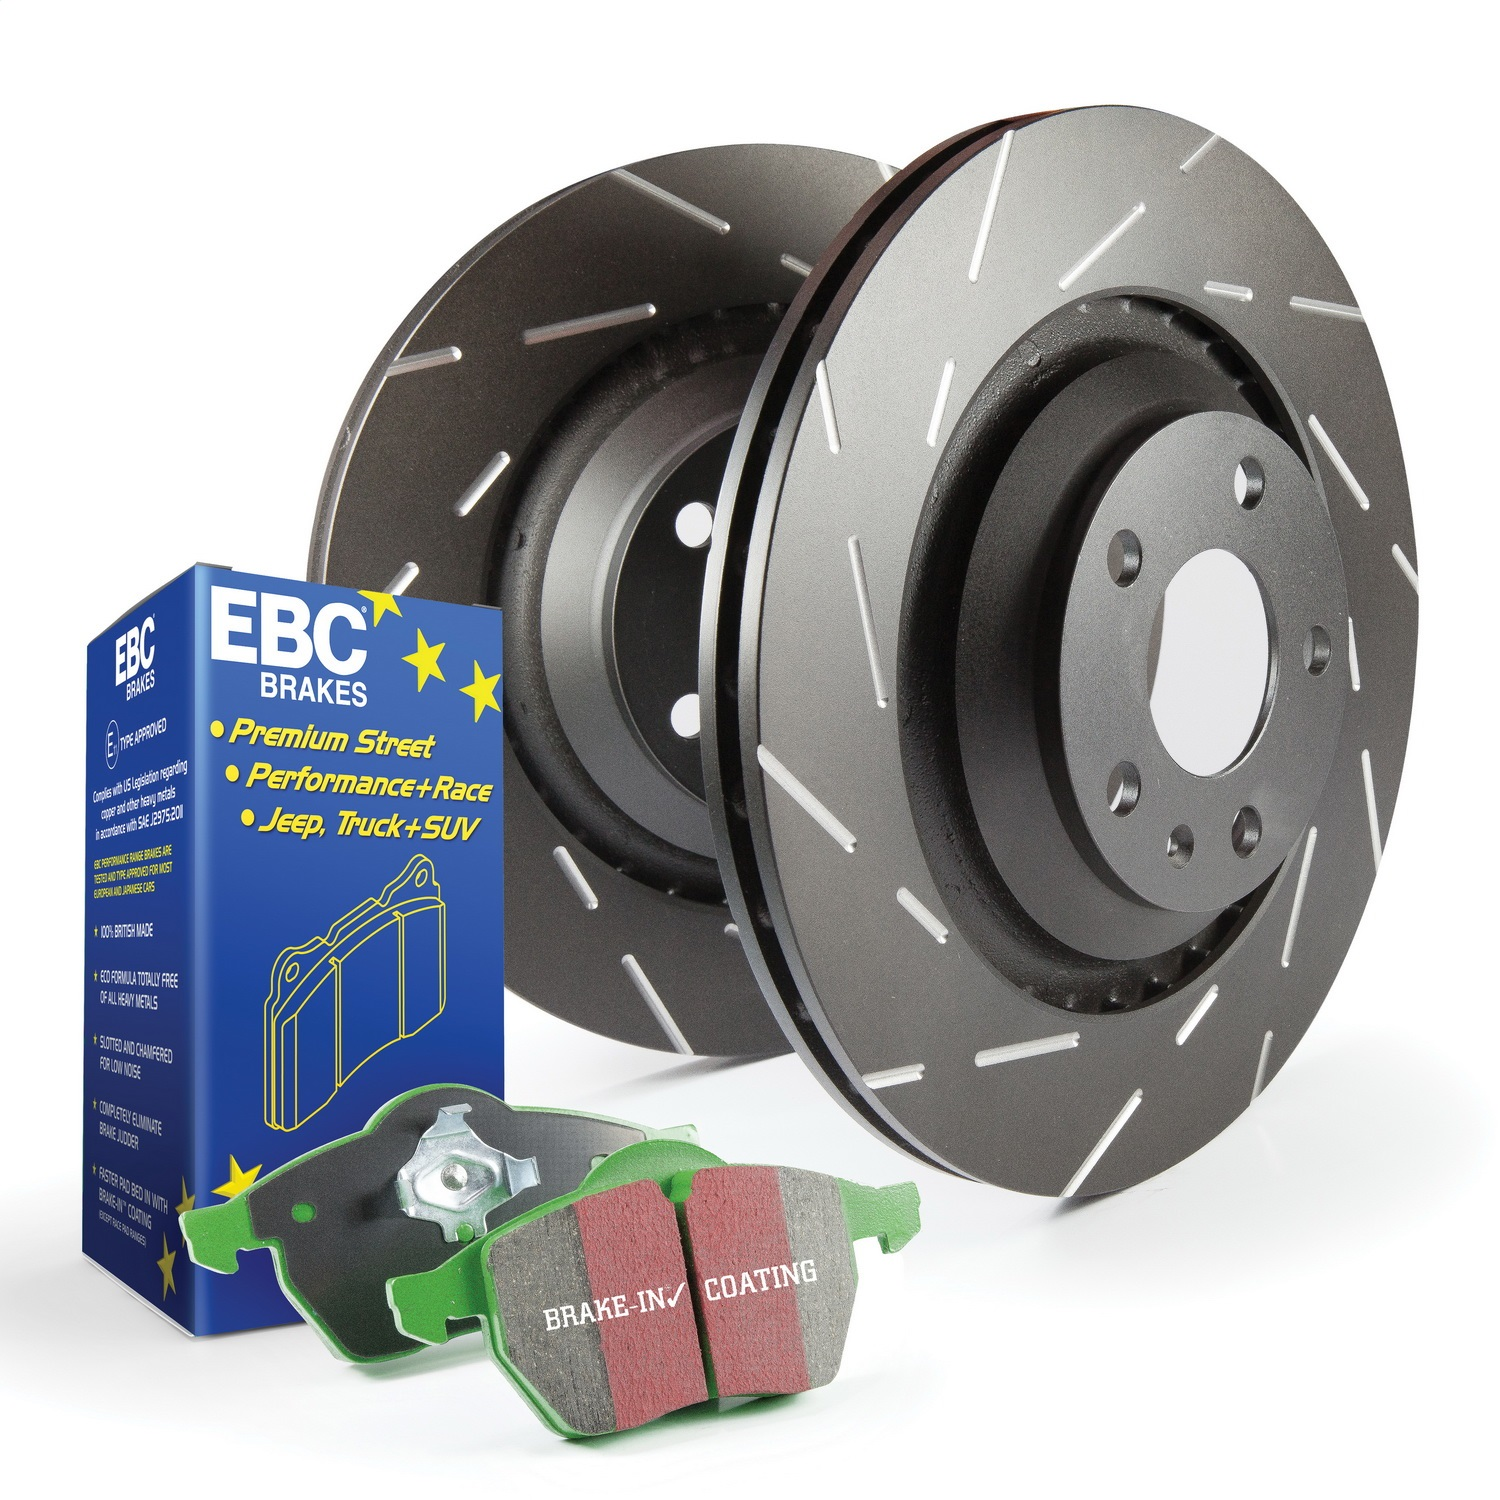 EBC Brakes S2KR2338 S2 Kits Greentuff 2000 and USR Rotors Fits 15-18 WRX